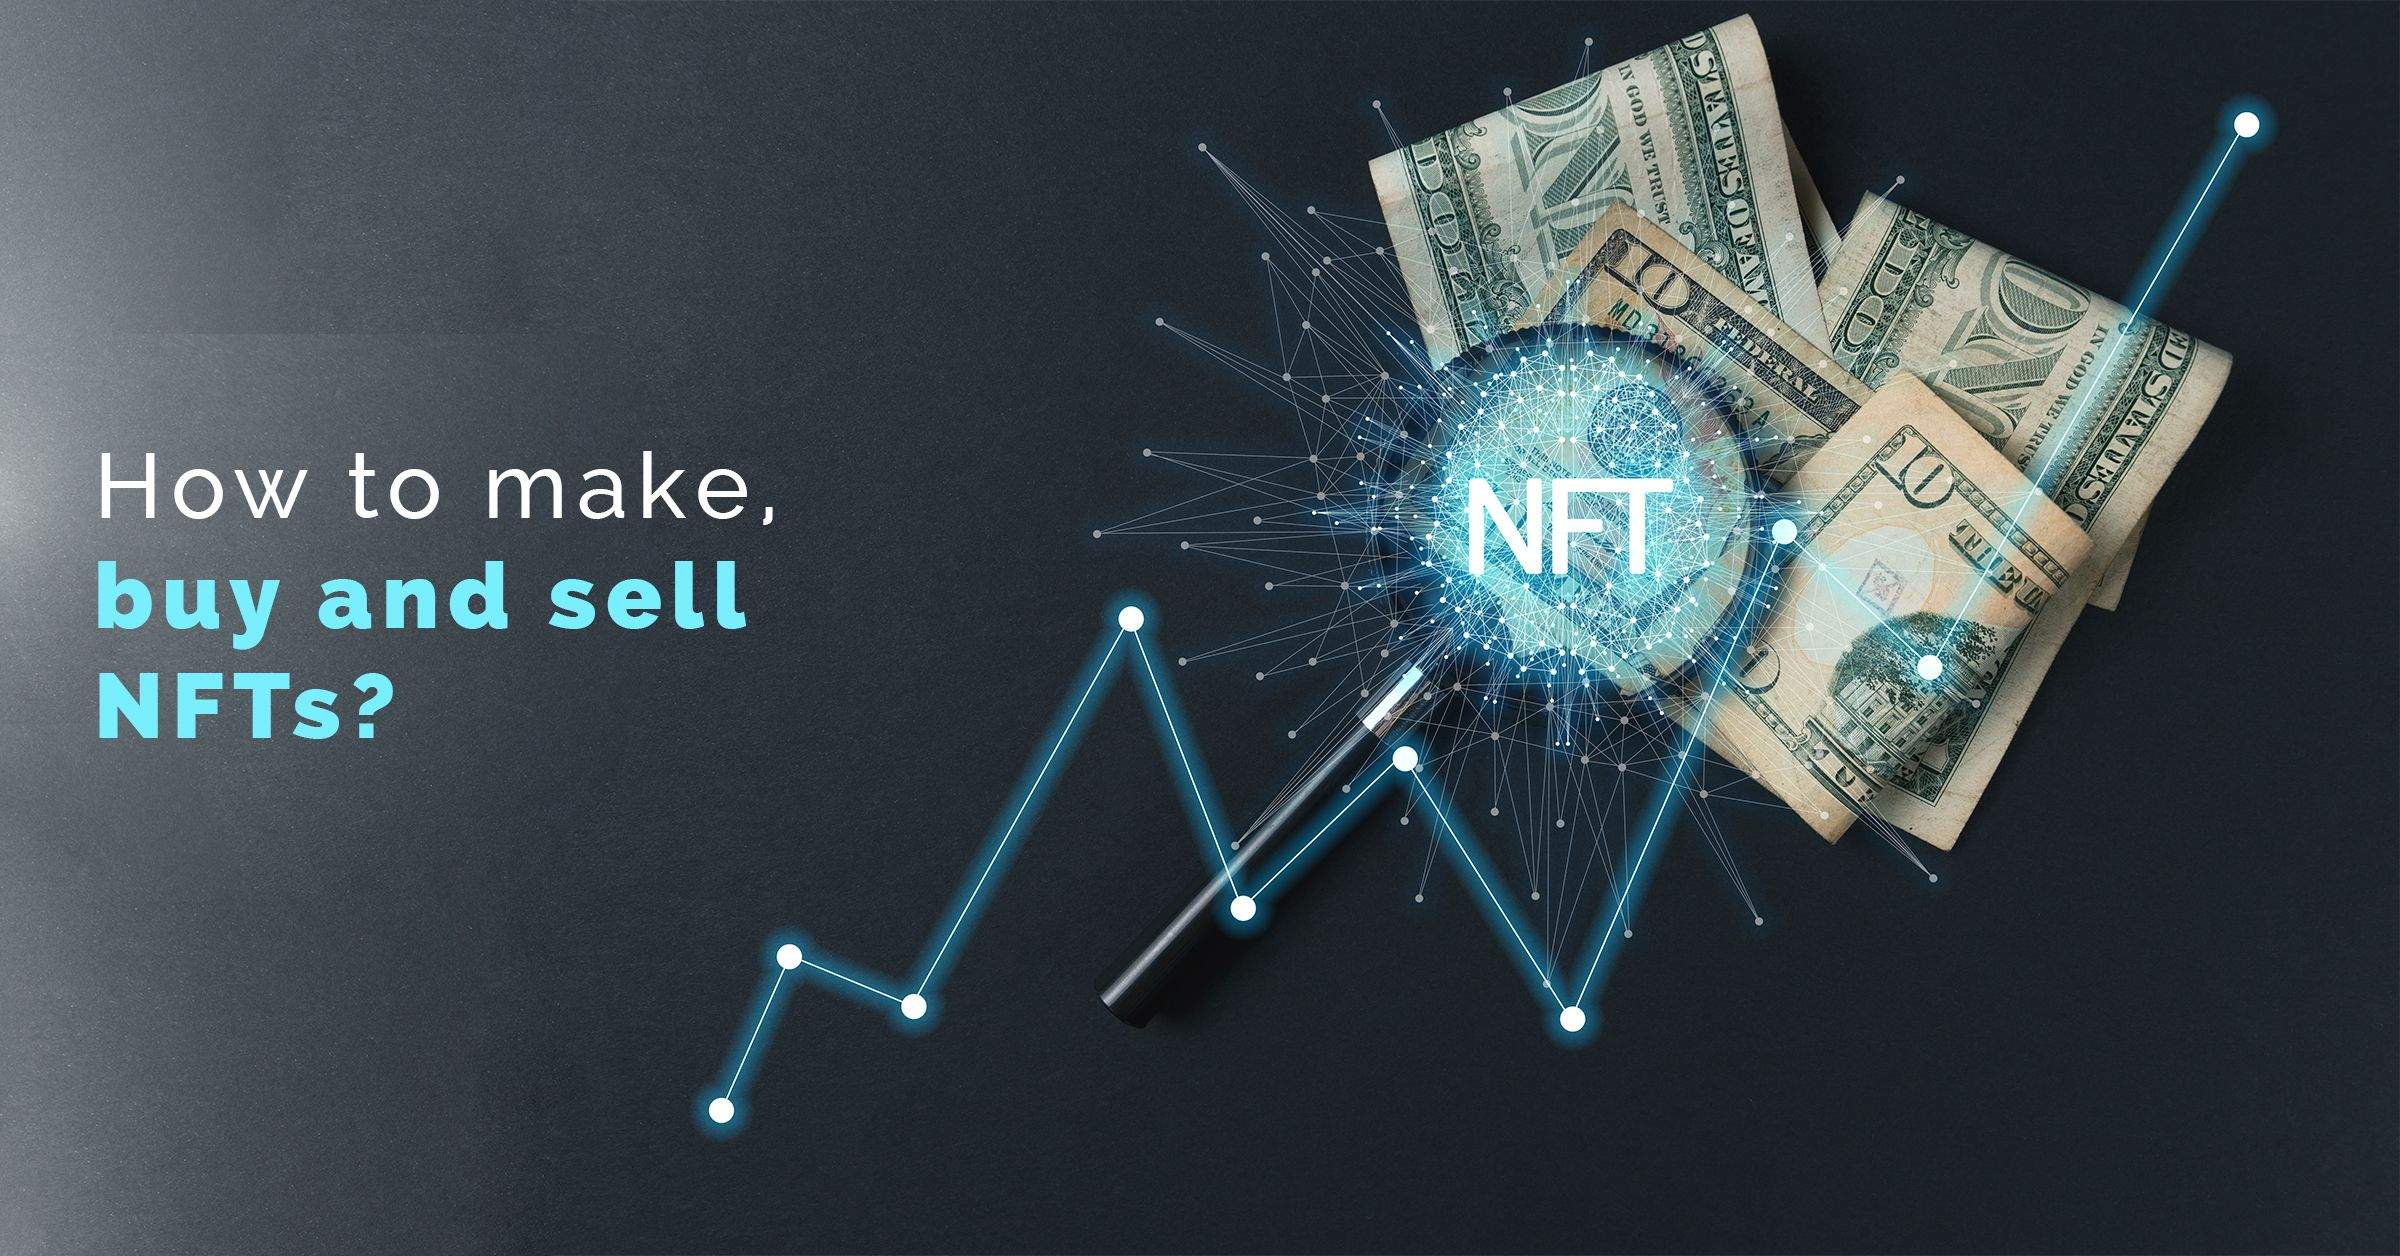 How to make, buy and sell NFTs?